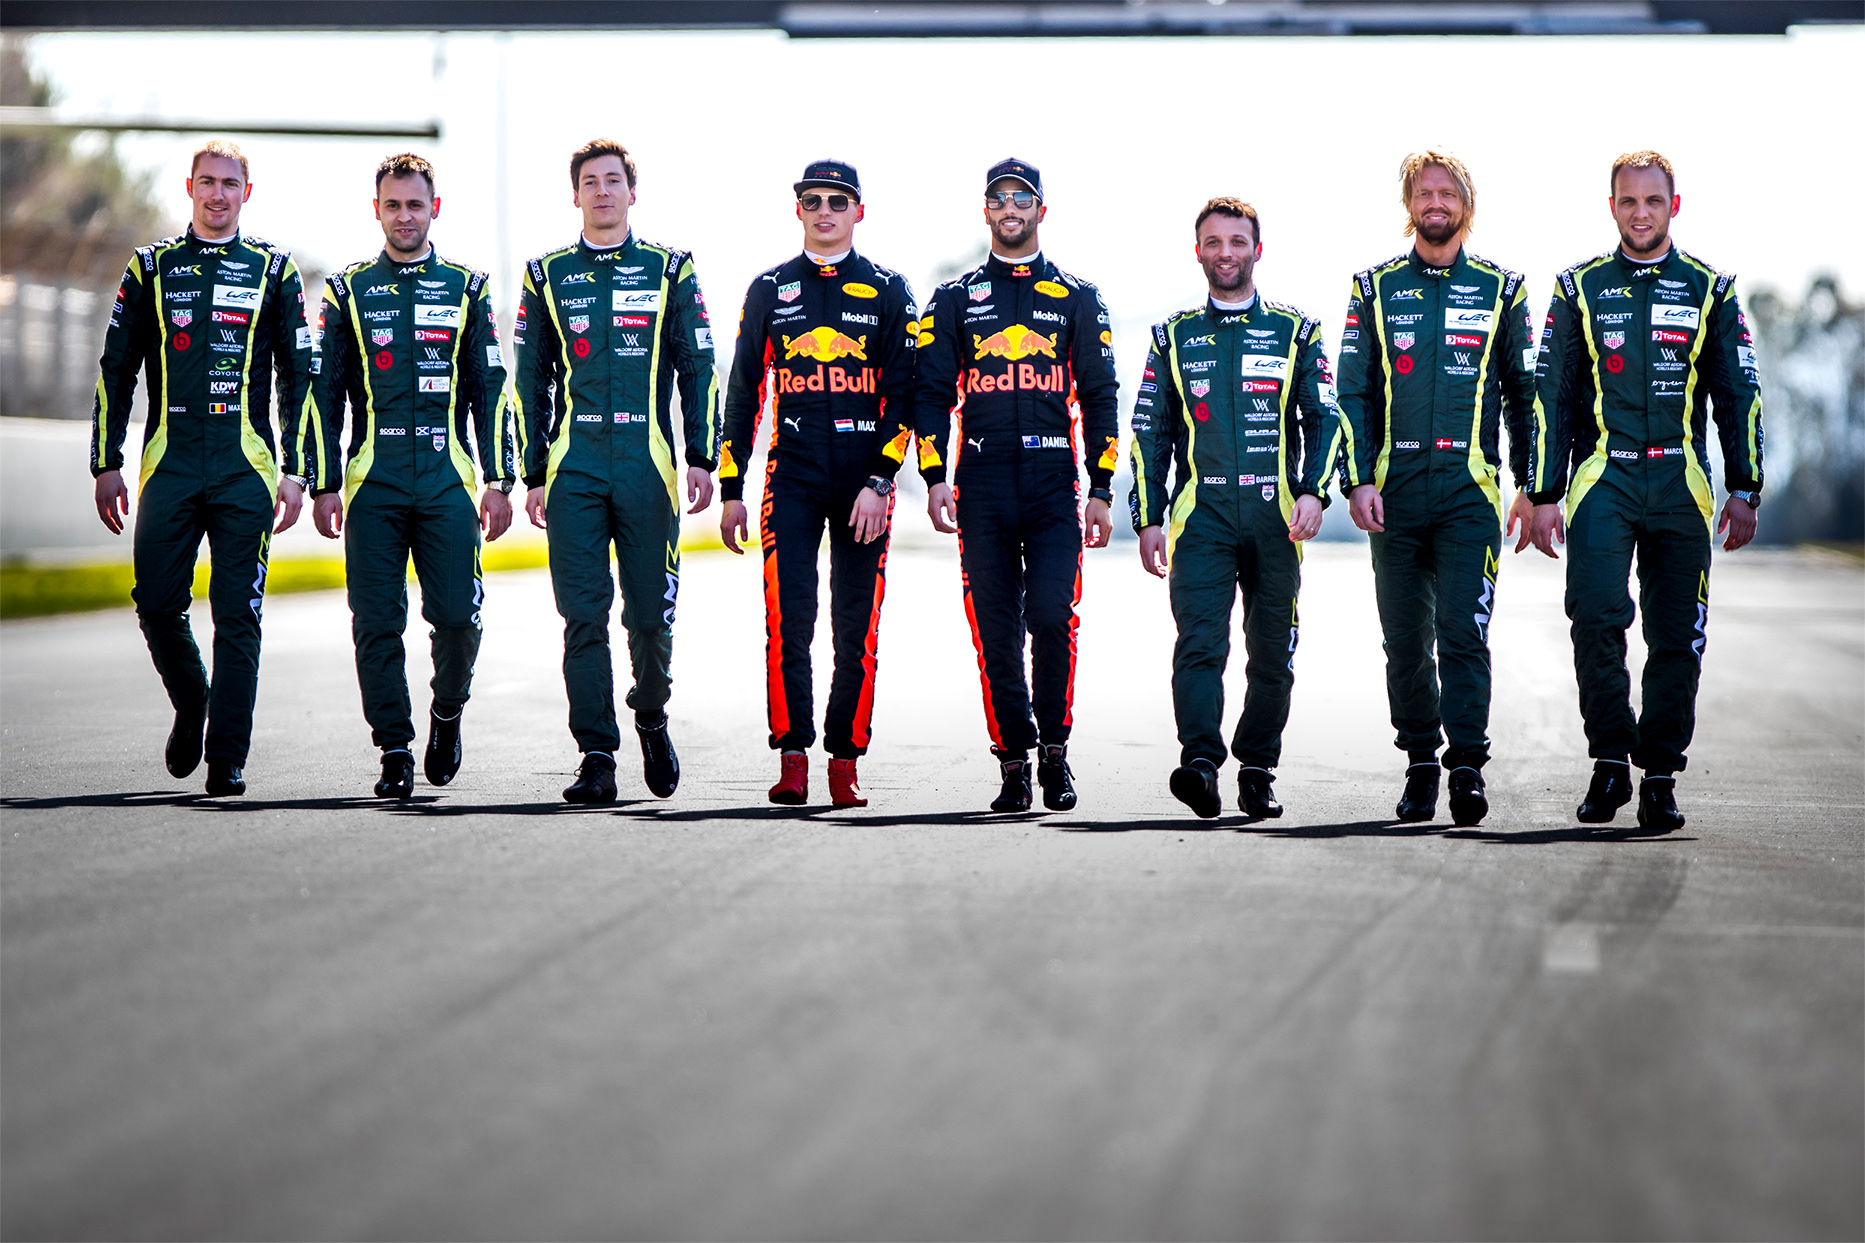 TrackWorthy - Aston Martin Red Bull Racing and Aston Martin Racing WEC Drivers